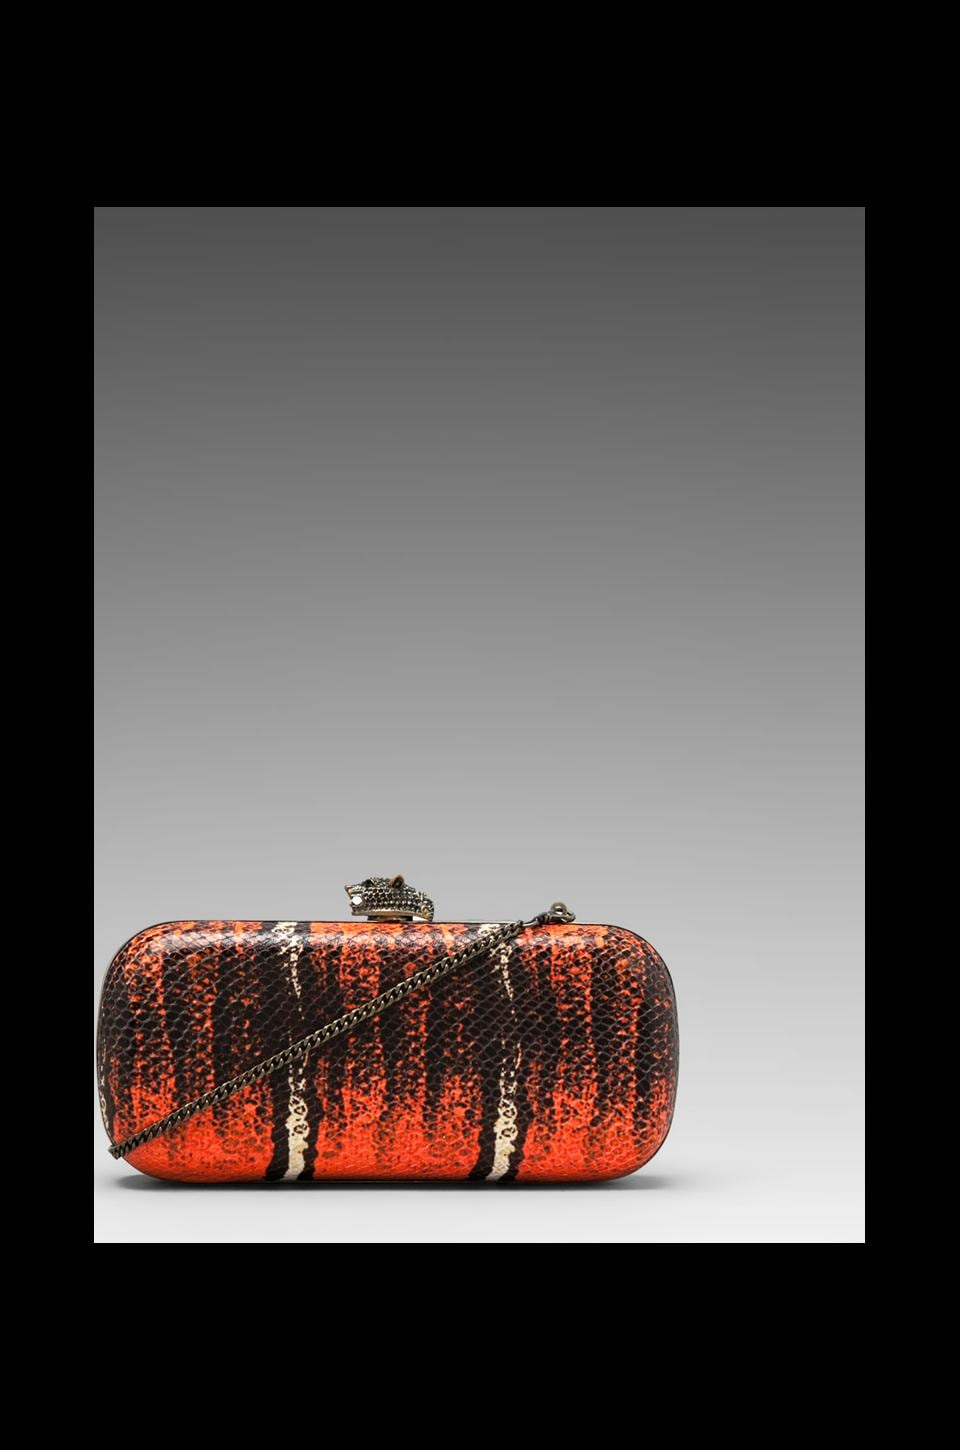 House of Harlow 1960 House of Harlow Adele Clutch in Coral/Brass